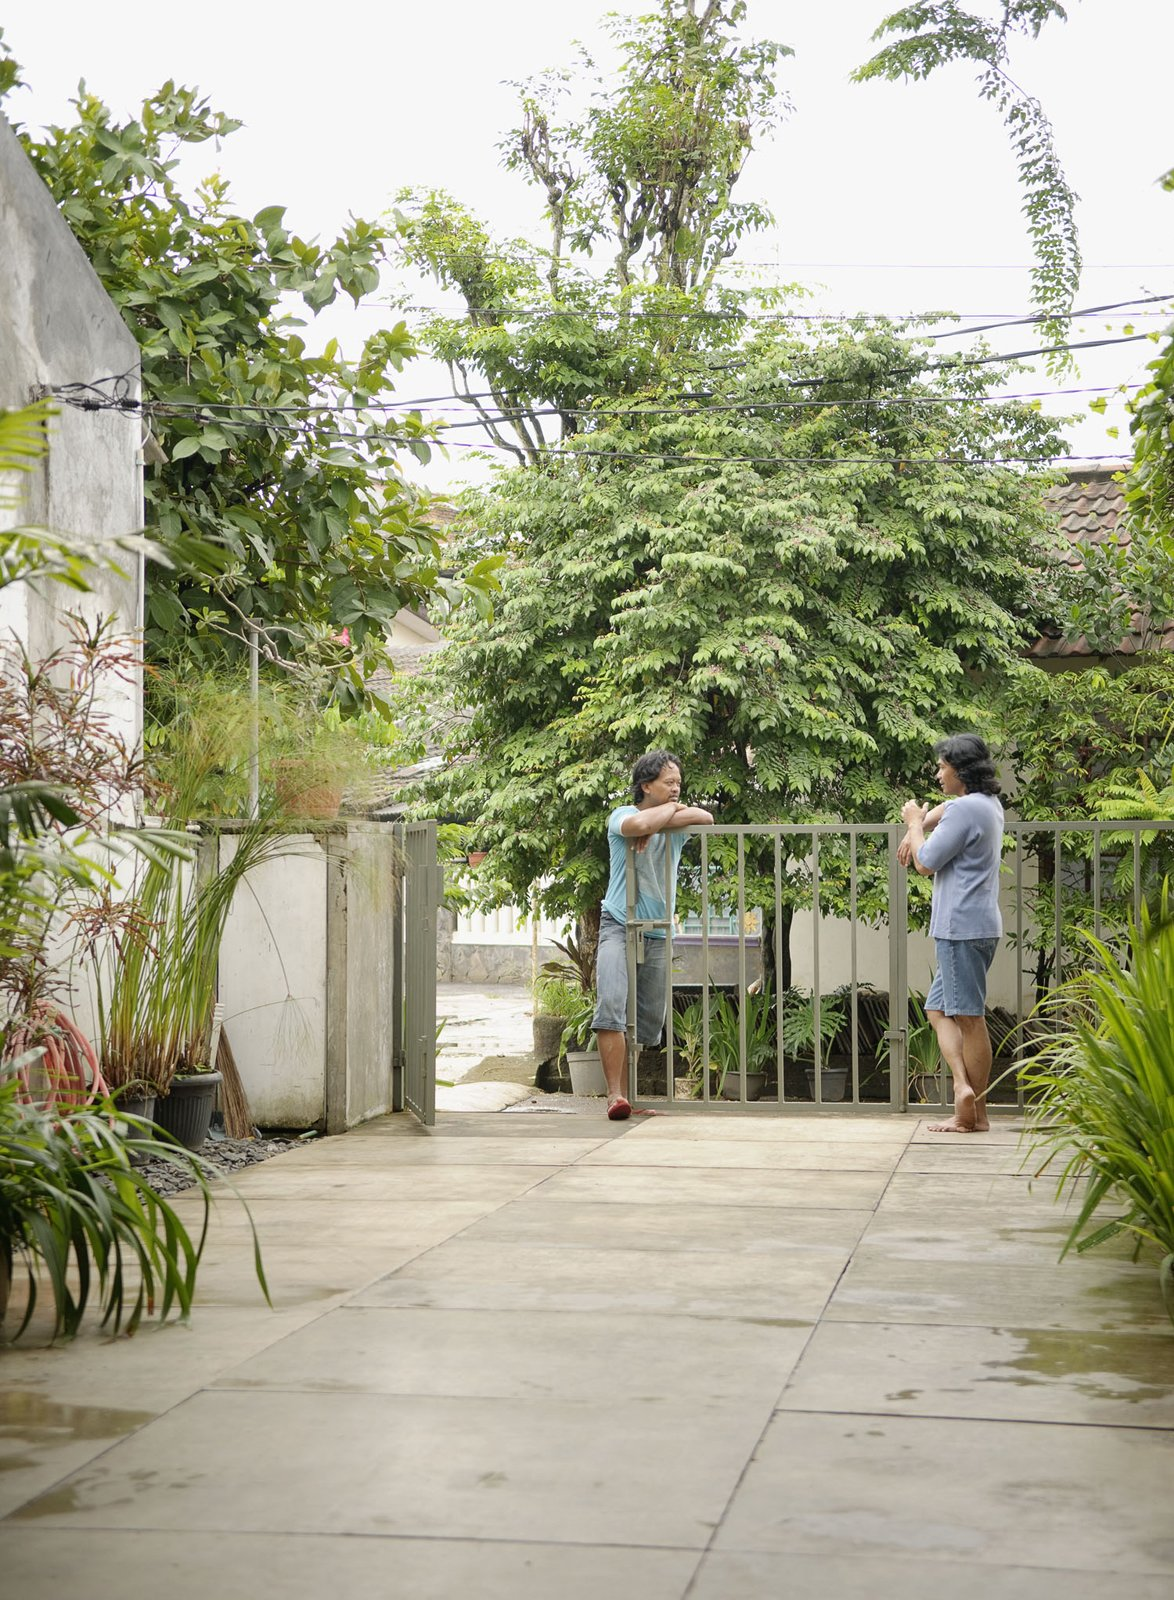 Wisnu and Sundari have a chat at the gate, which just barely keeps Jakarta's heavy vegetation at bay.  Photo 15 of 26 in Humid City, Cool Home